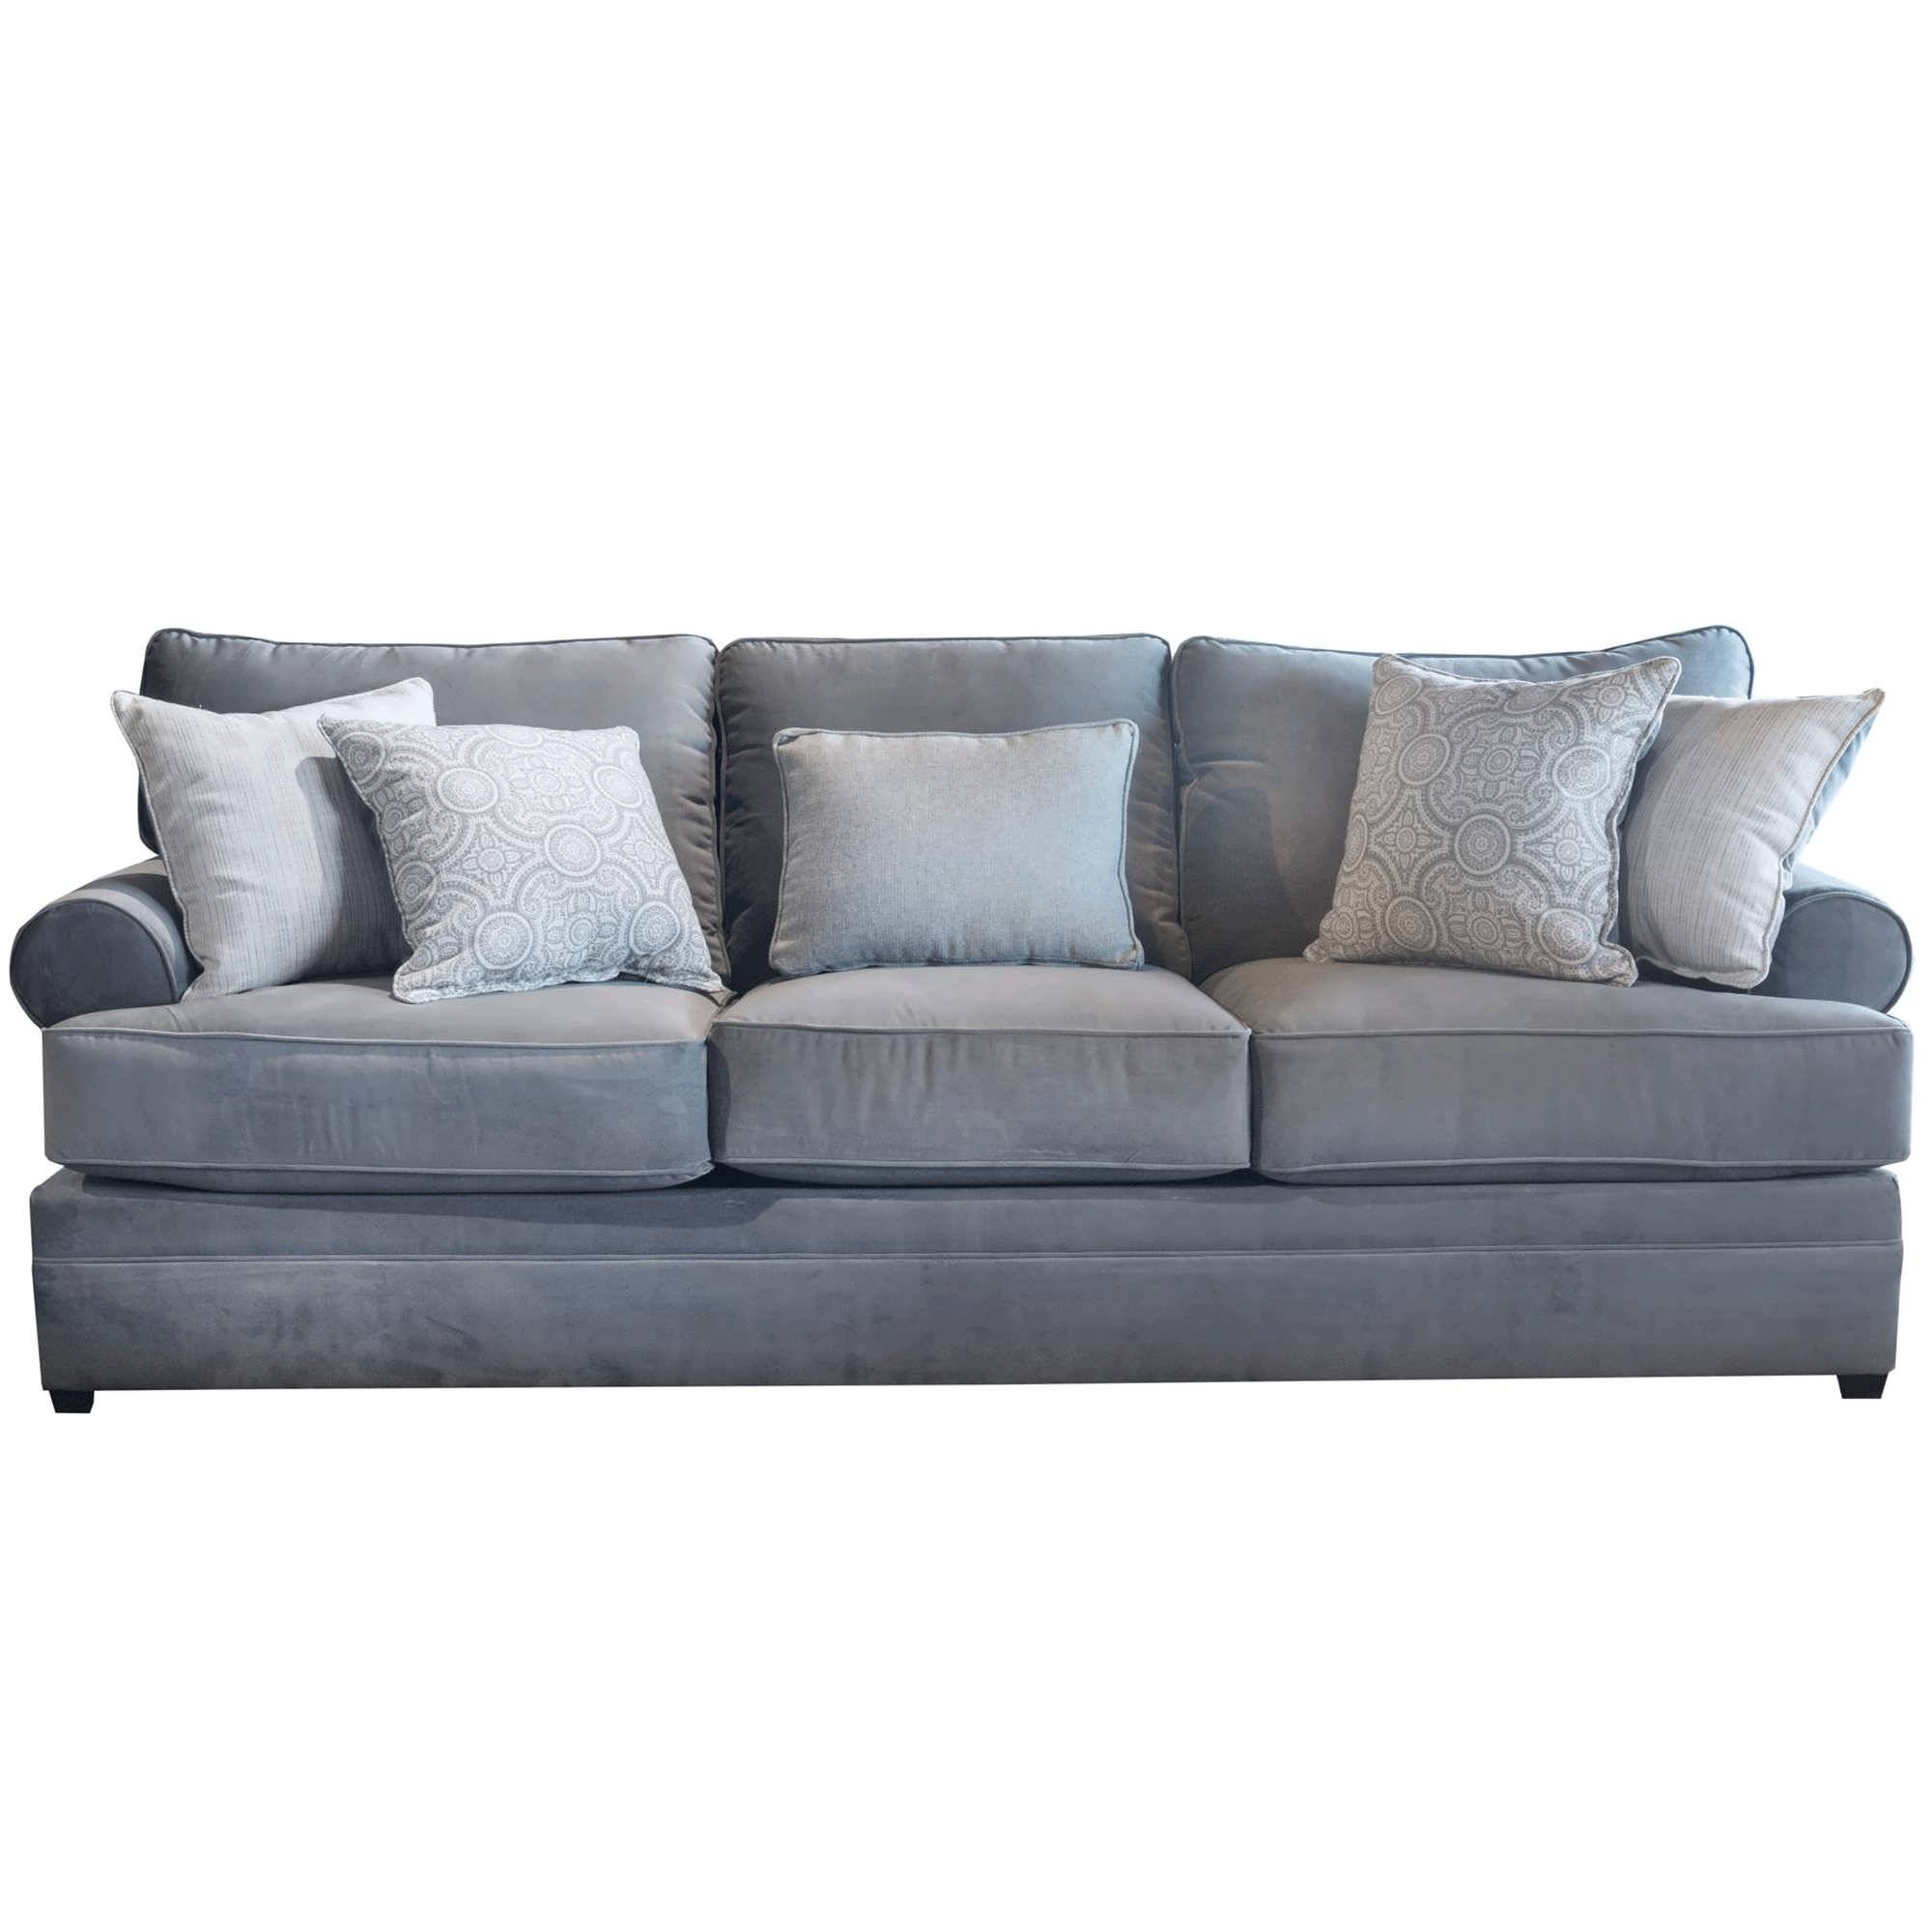 Sofa : Furniture Sofa Cushions Sleeper Sofas Living Room Furniture pertaining to Cindy Crawford Sleeper Sofas (Image 11 of 15)